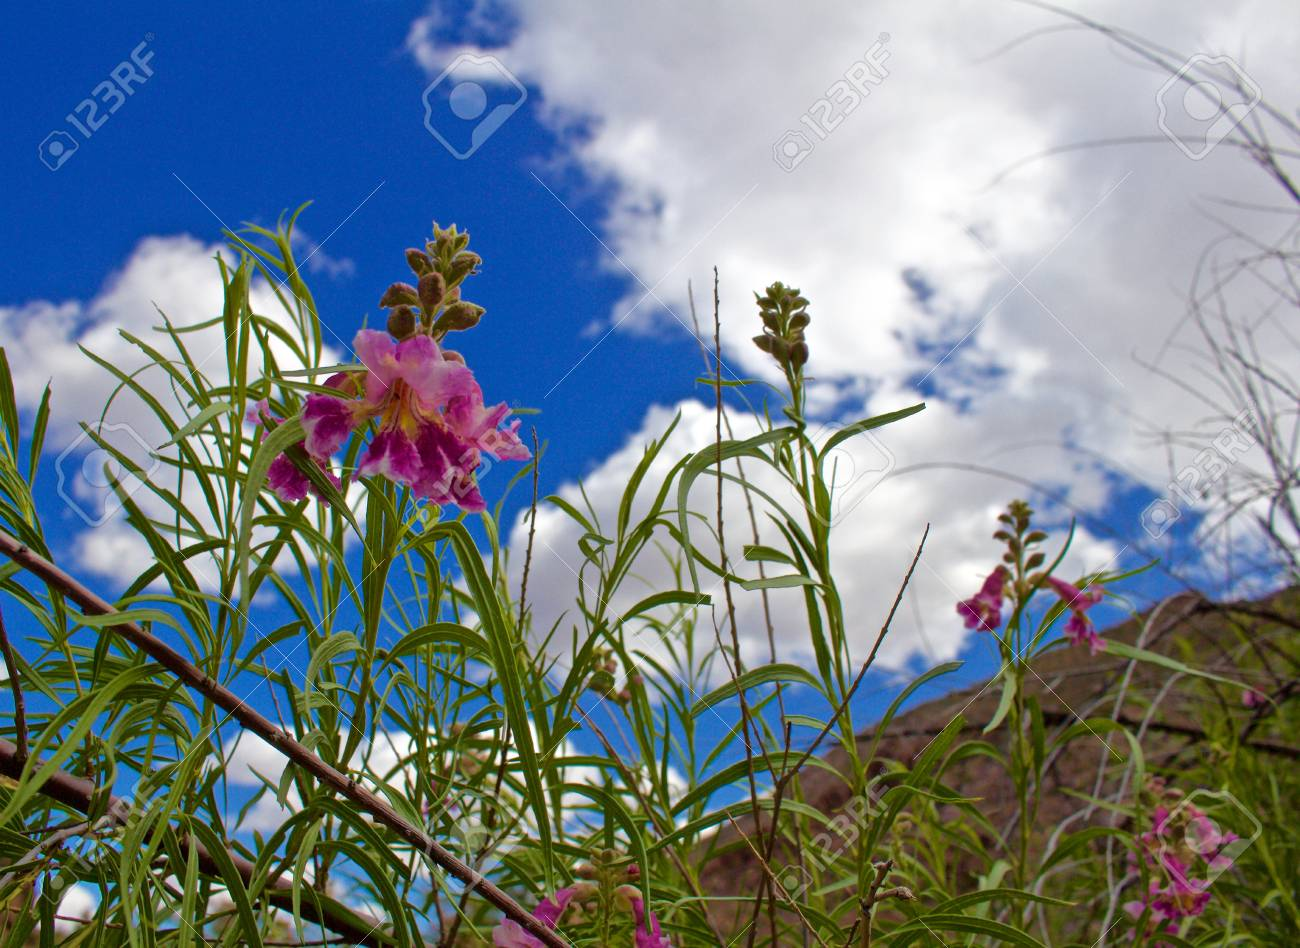 Pink Desert Willow View From Below Plant With Blue Cloudy Skies